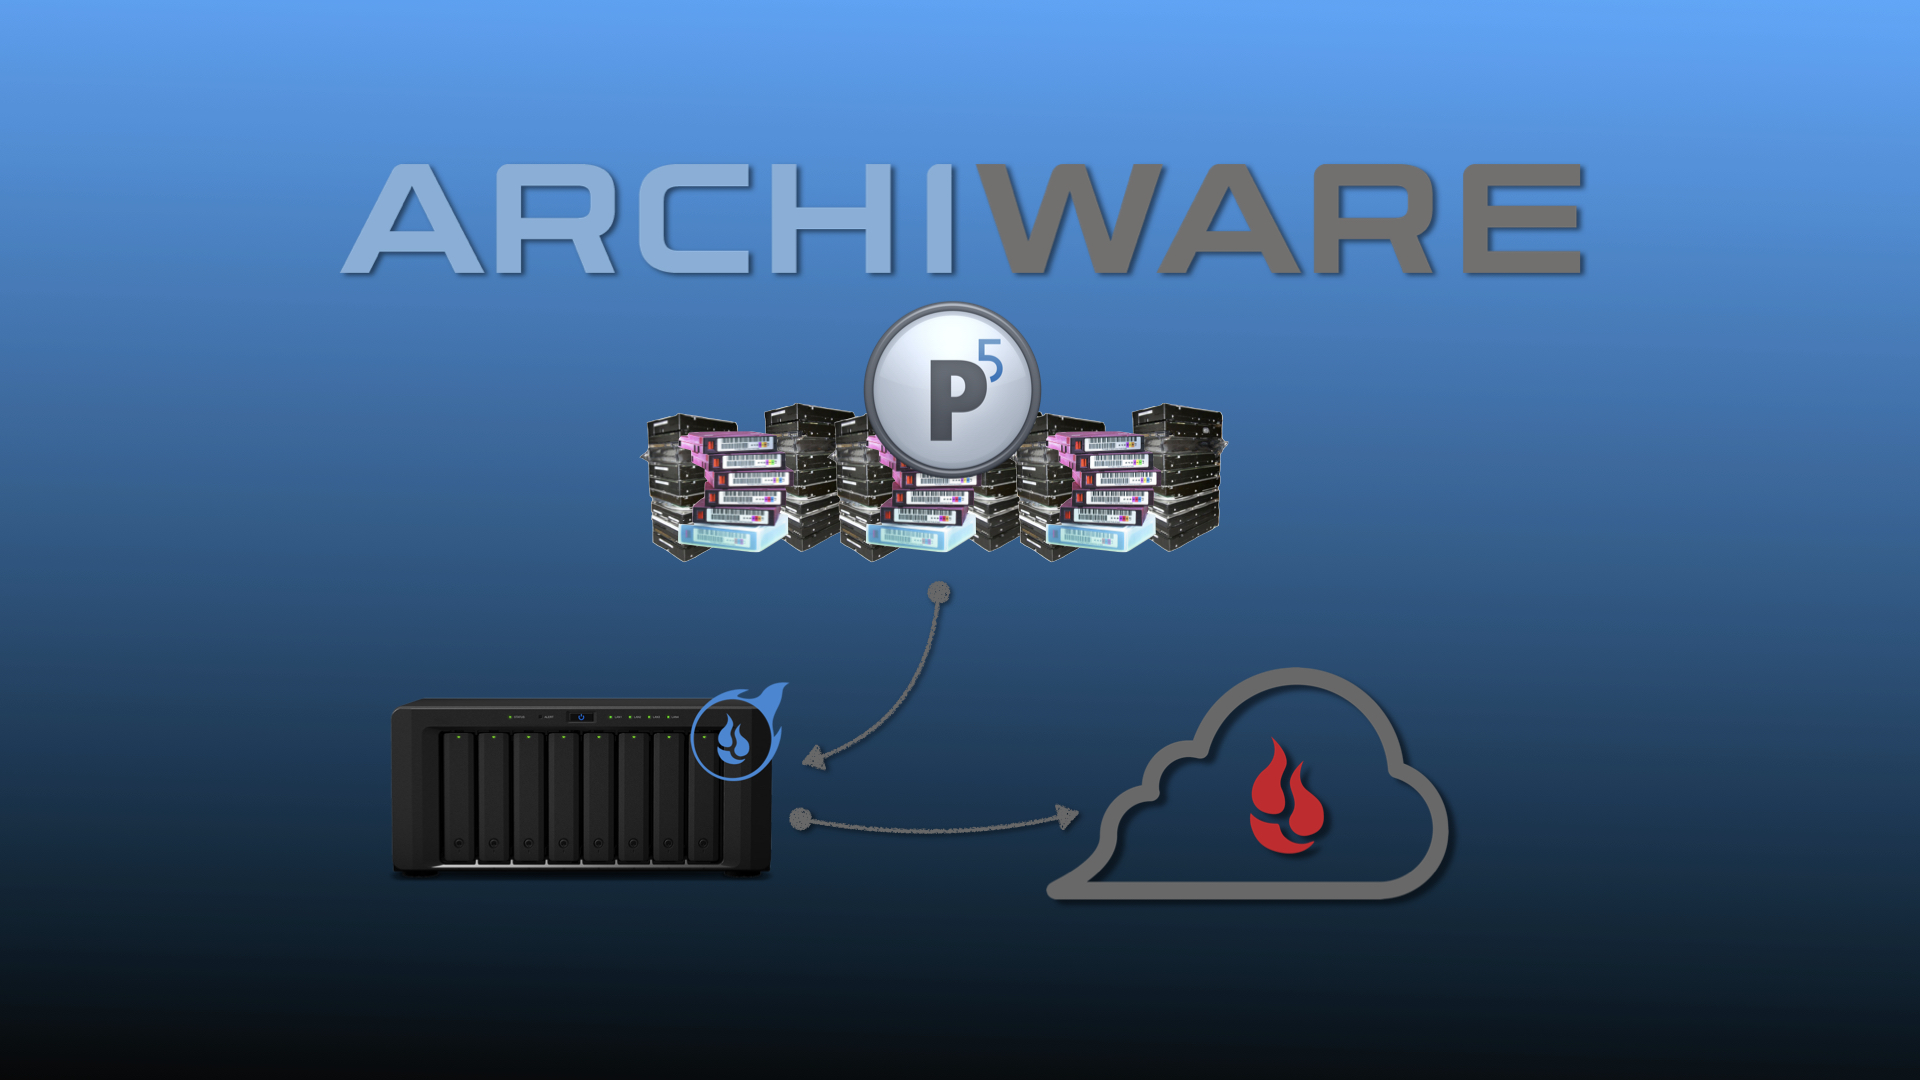 Archiware P5 and Fireball